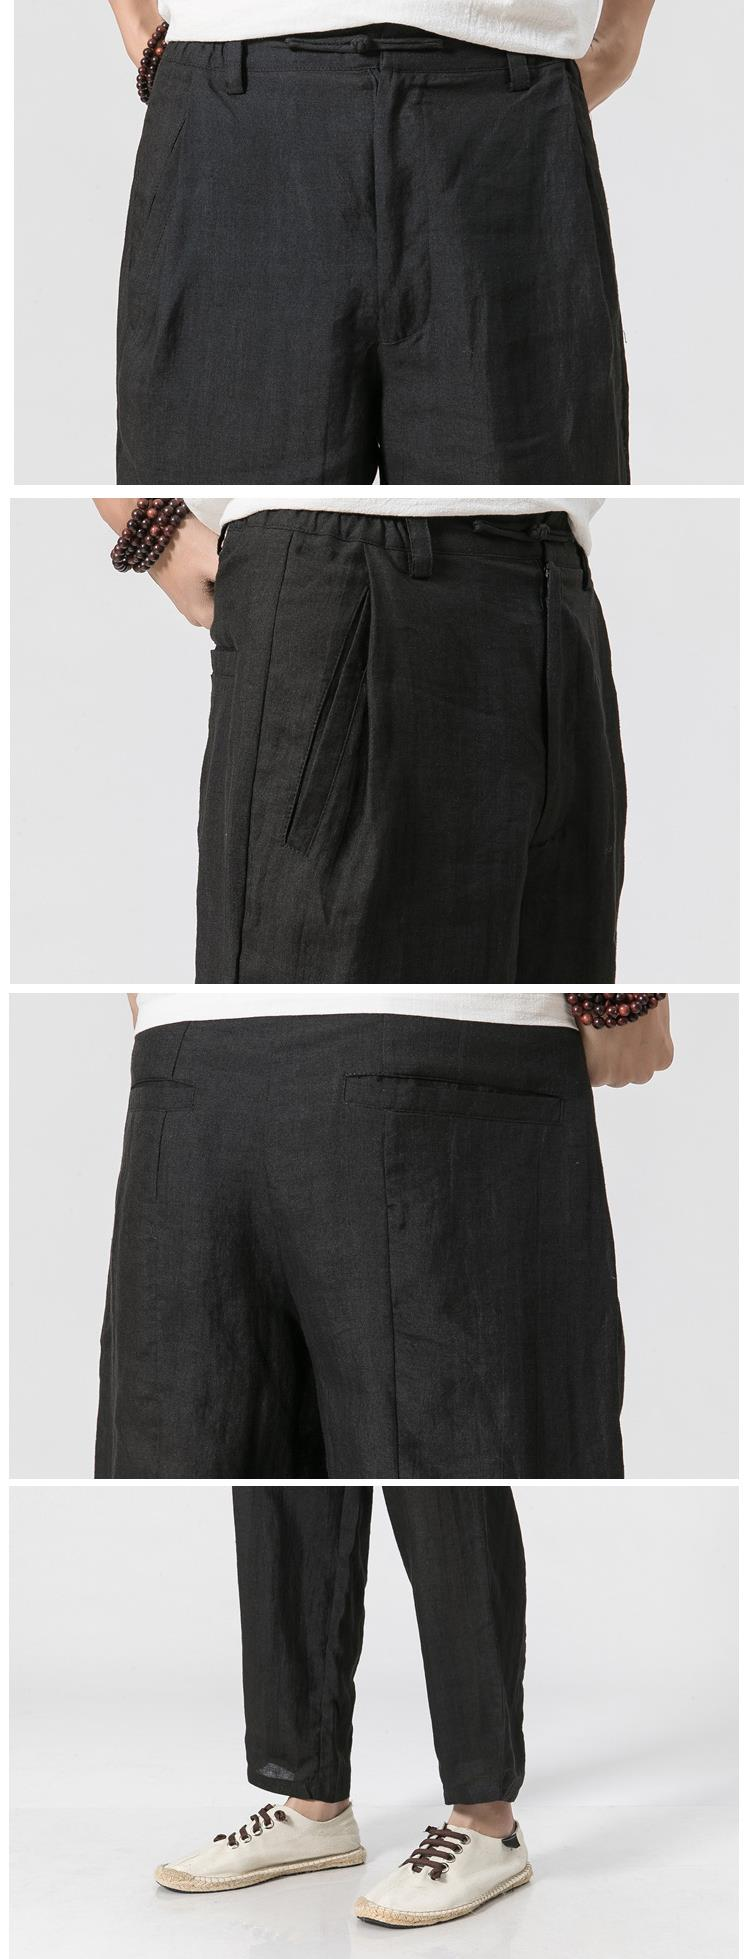 Men's Loose Cotton Linen Casual Pants